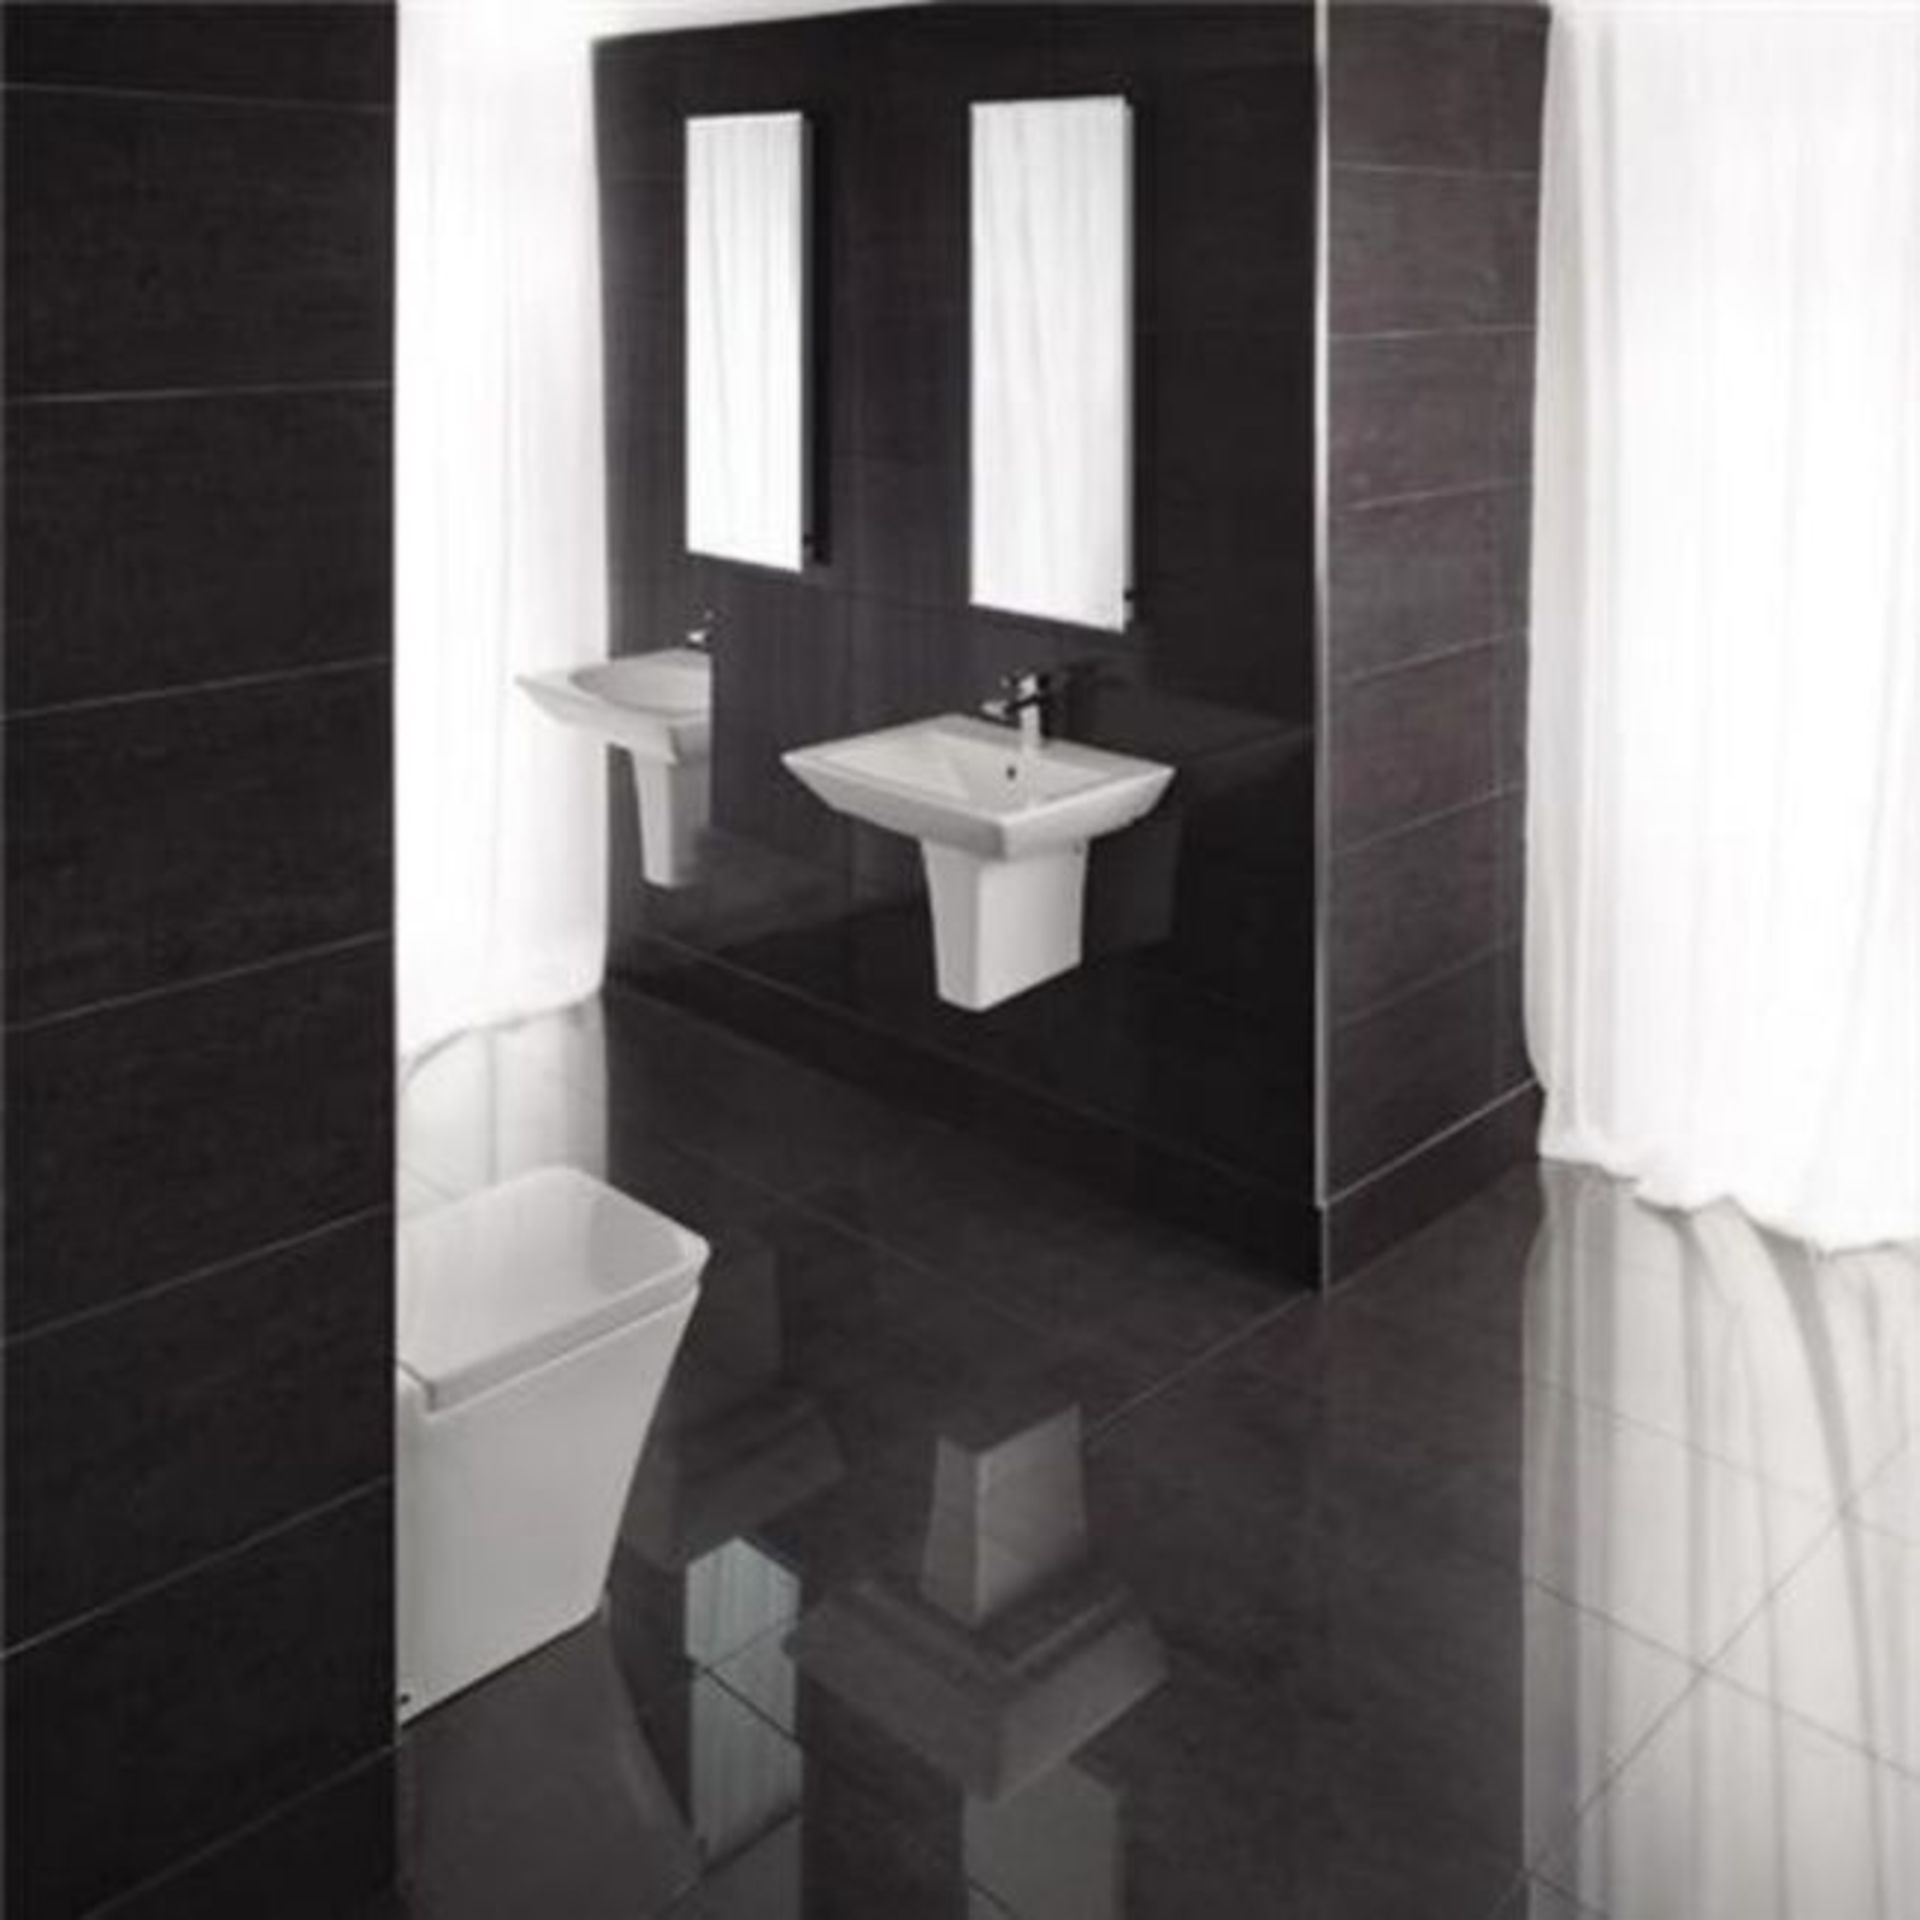 NEW 8.25m2 Milano Garfito Wall and Floor Tiles. 450x450mm per tile, 10mm Thick. Give your bathroom